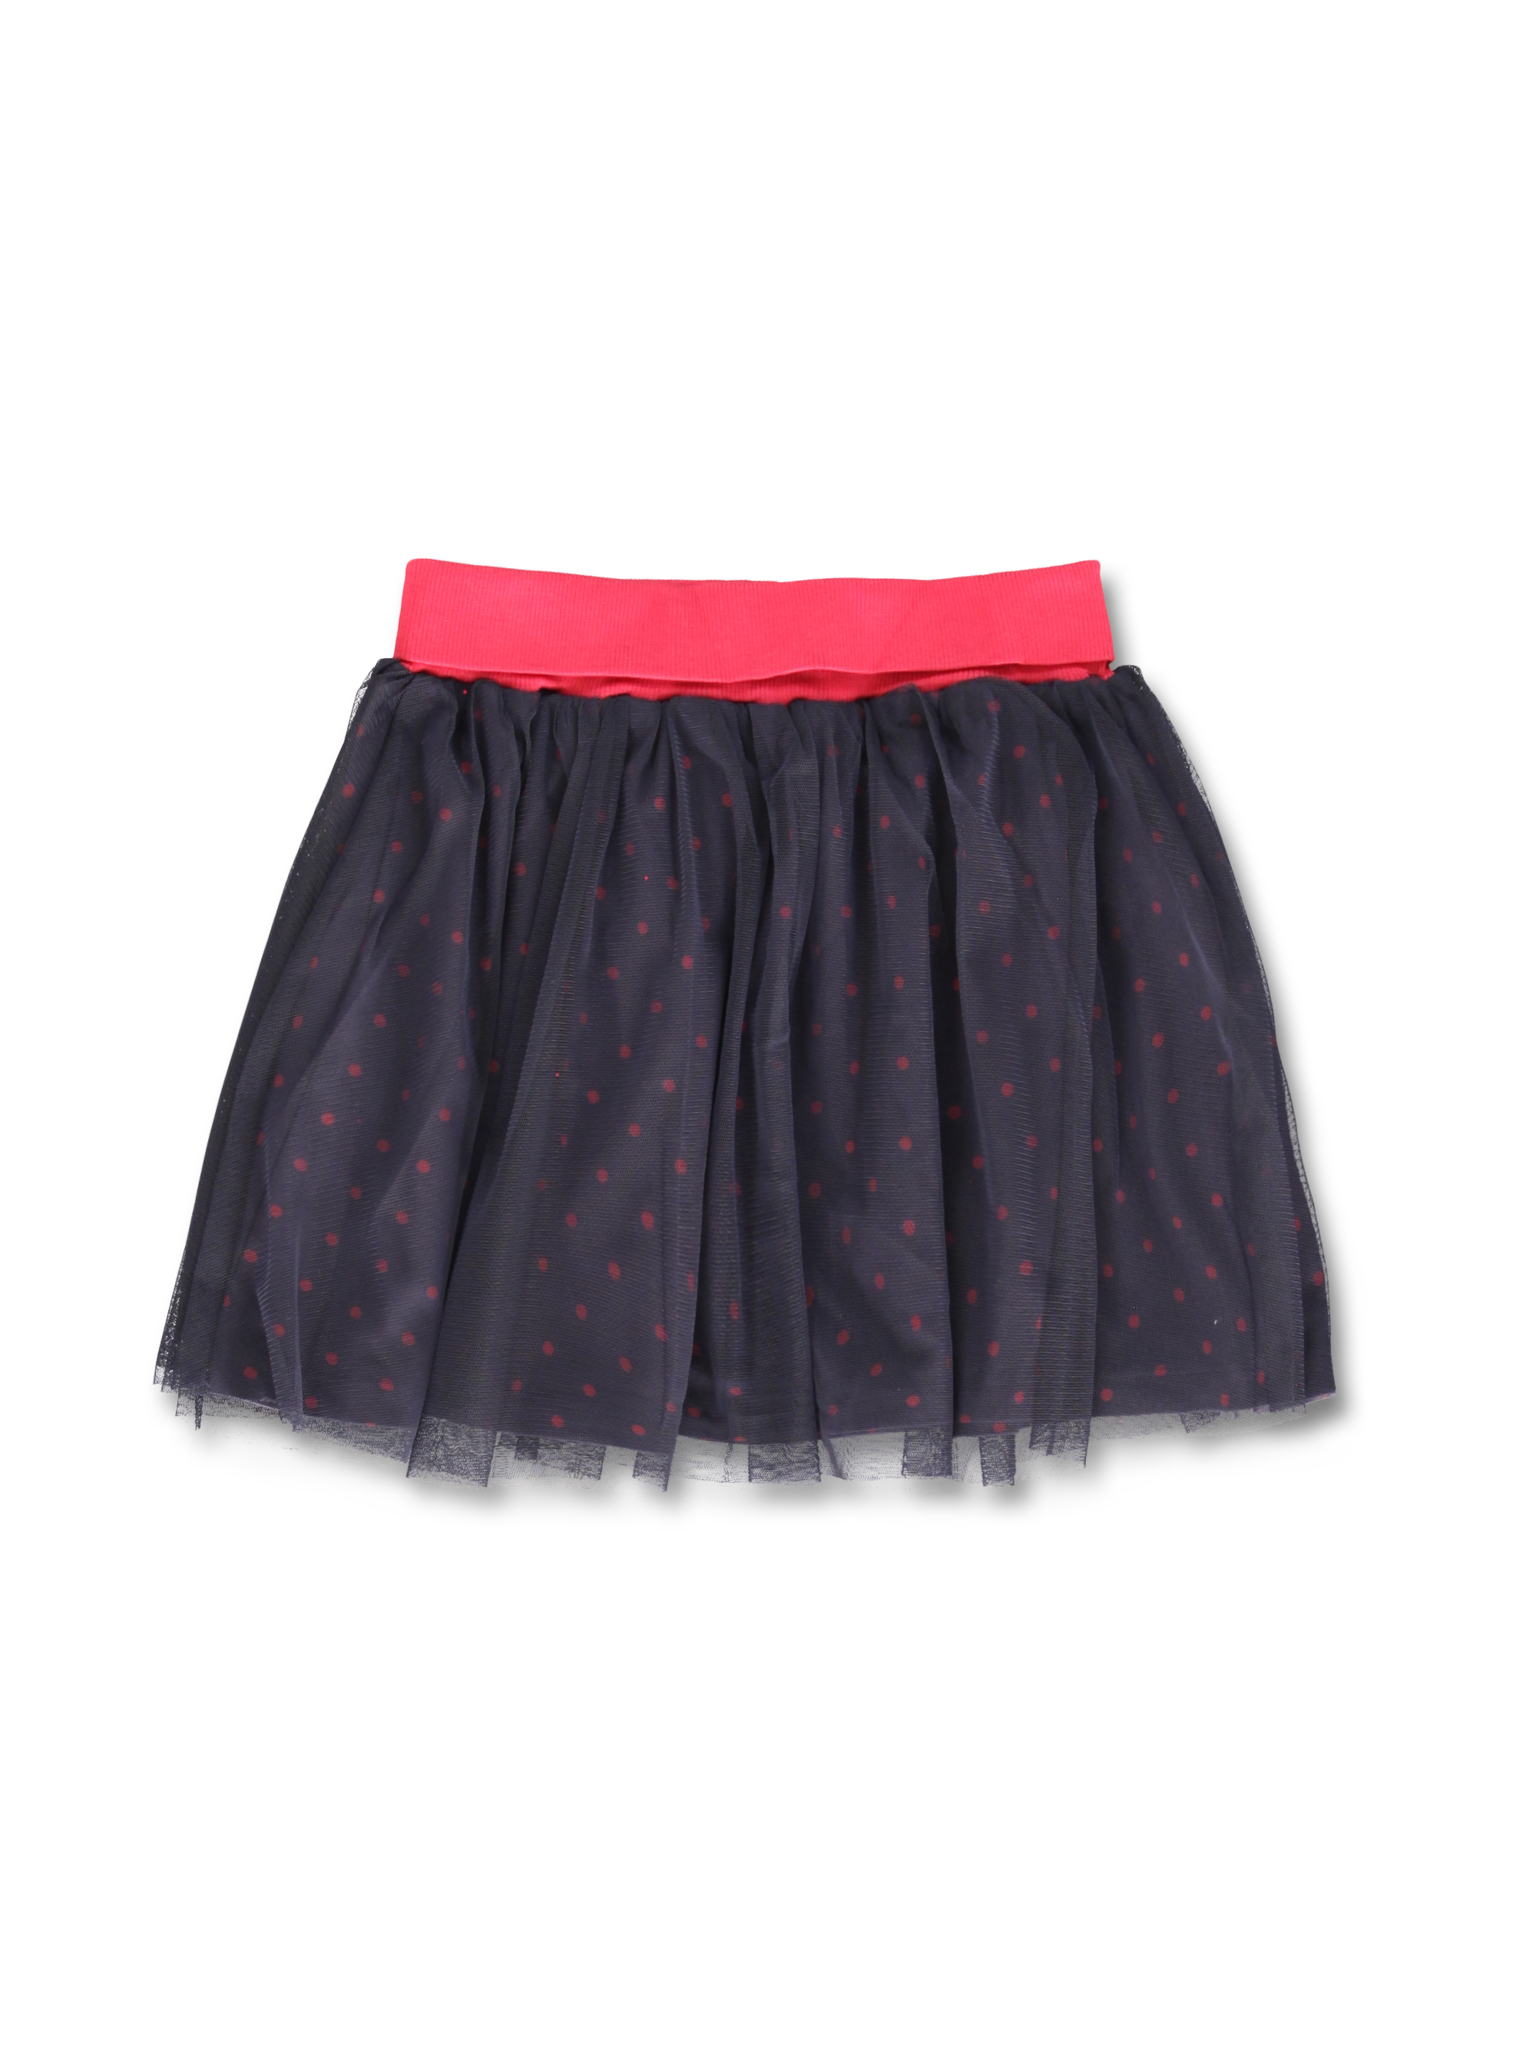 All Brands | Winterproducts Small Girls | Skirt | 12 pcs/box